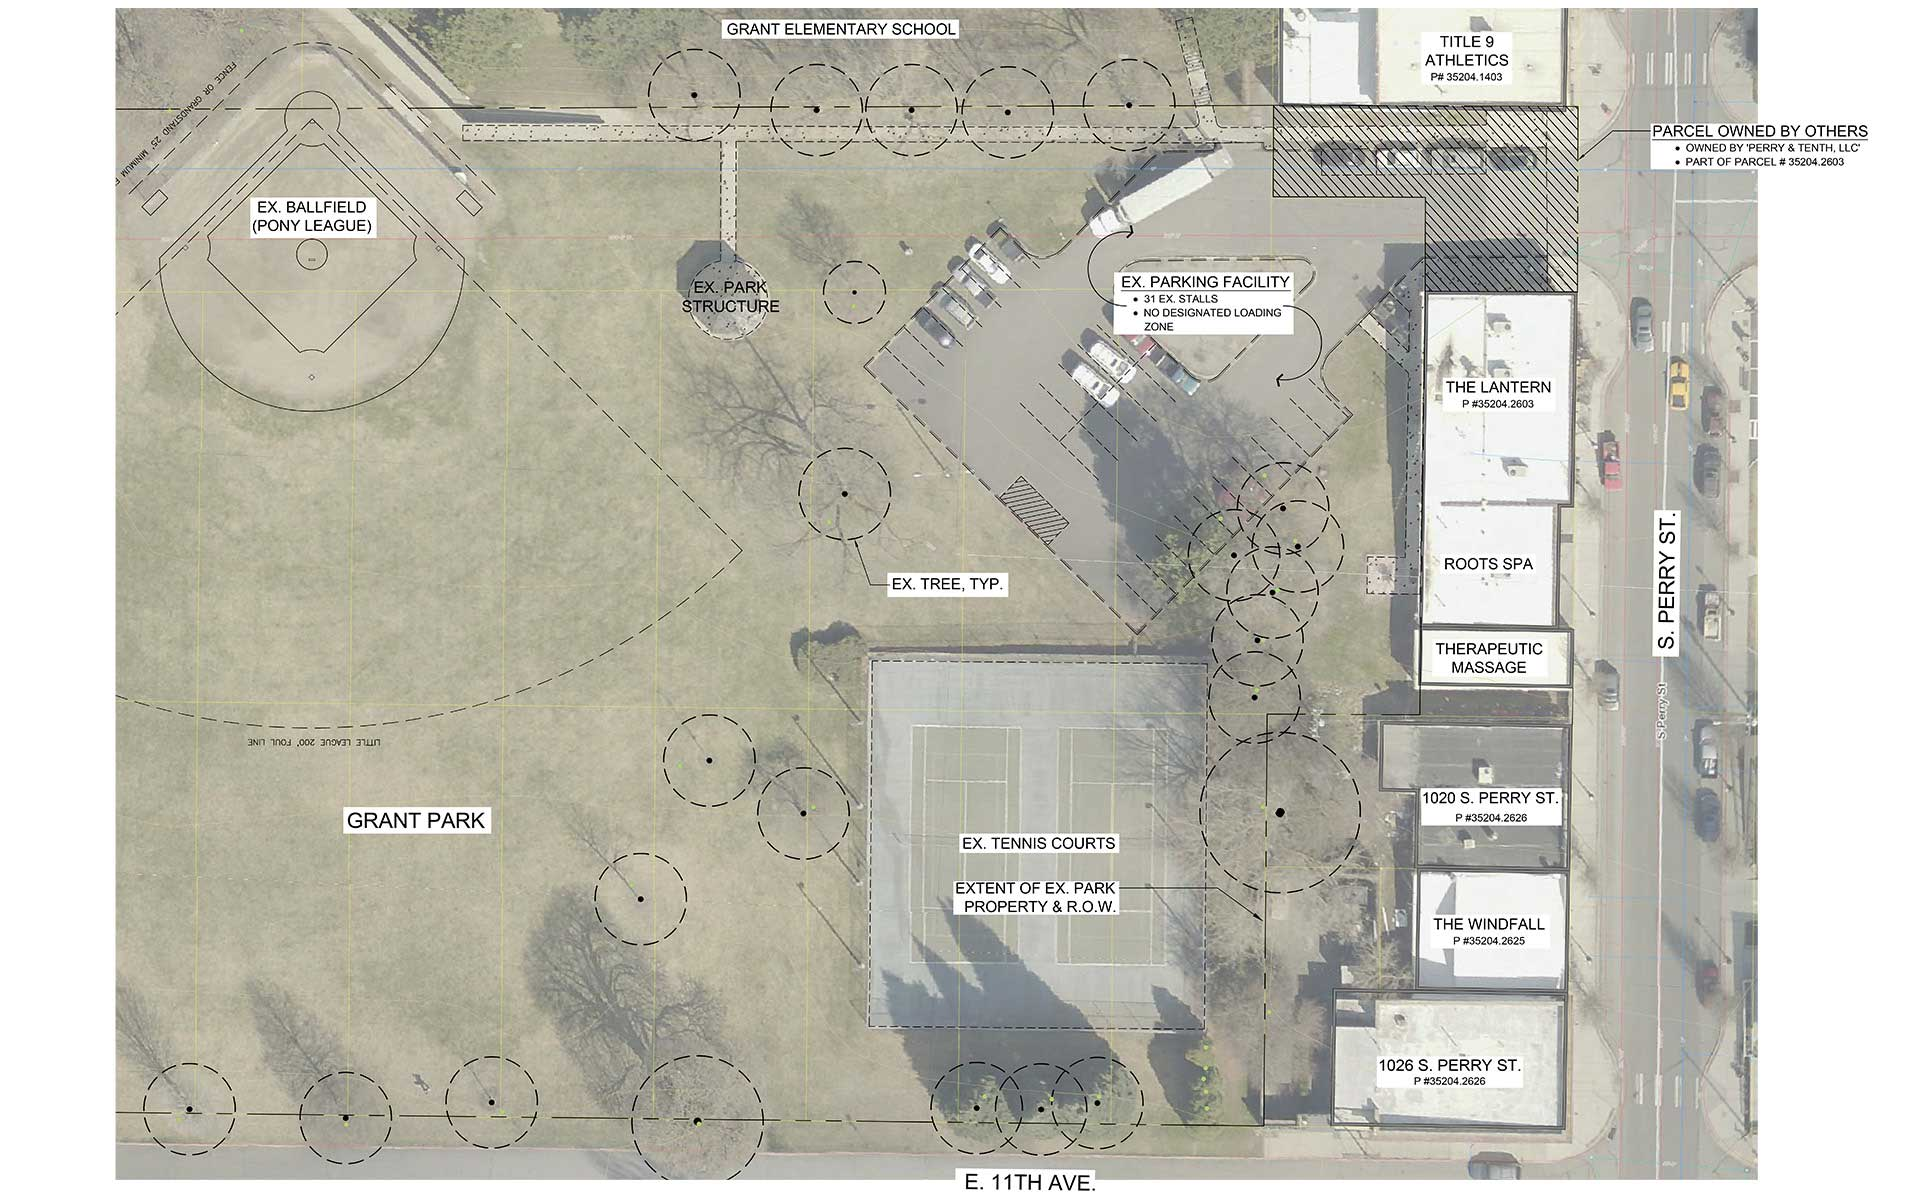 Grant Park Parking Improvements - Concepts & Public Comment